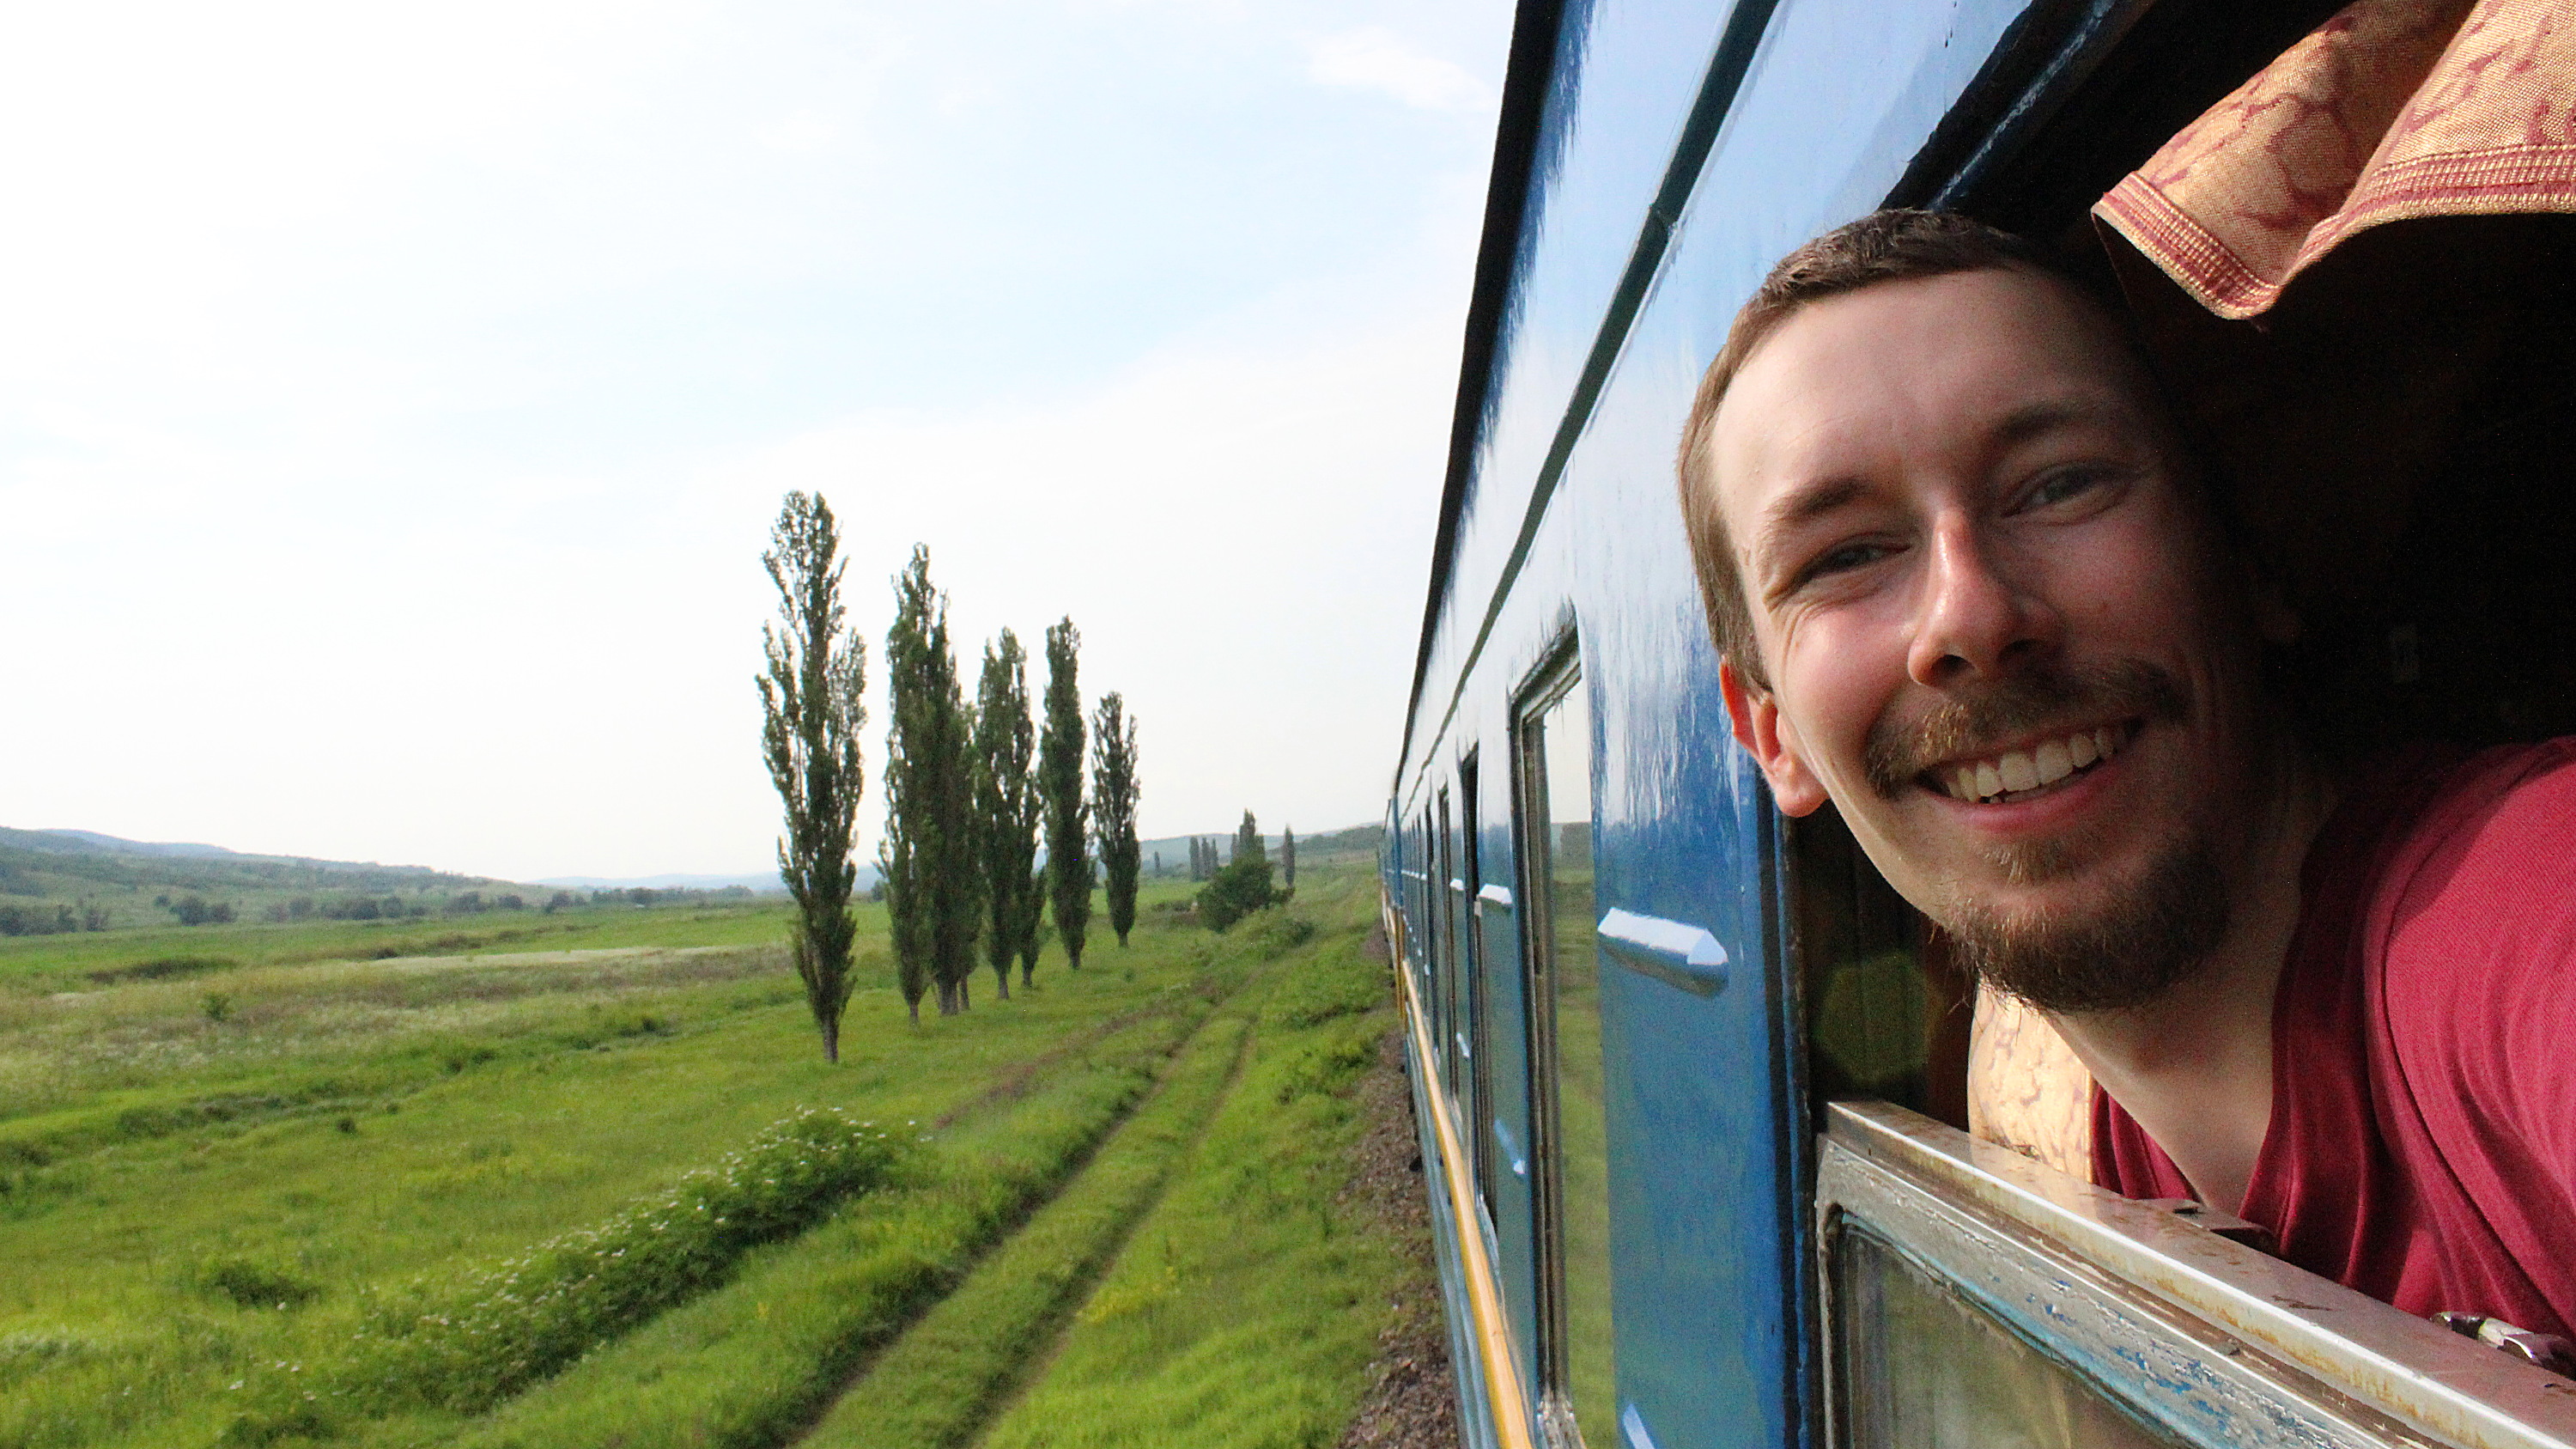 How to waste time during long train journeys? A tourist taking a selfie peeking from an open train window.